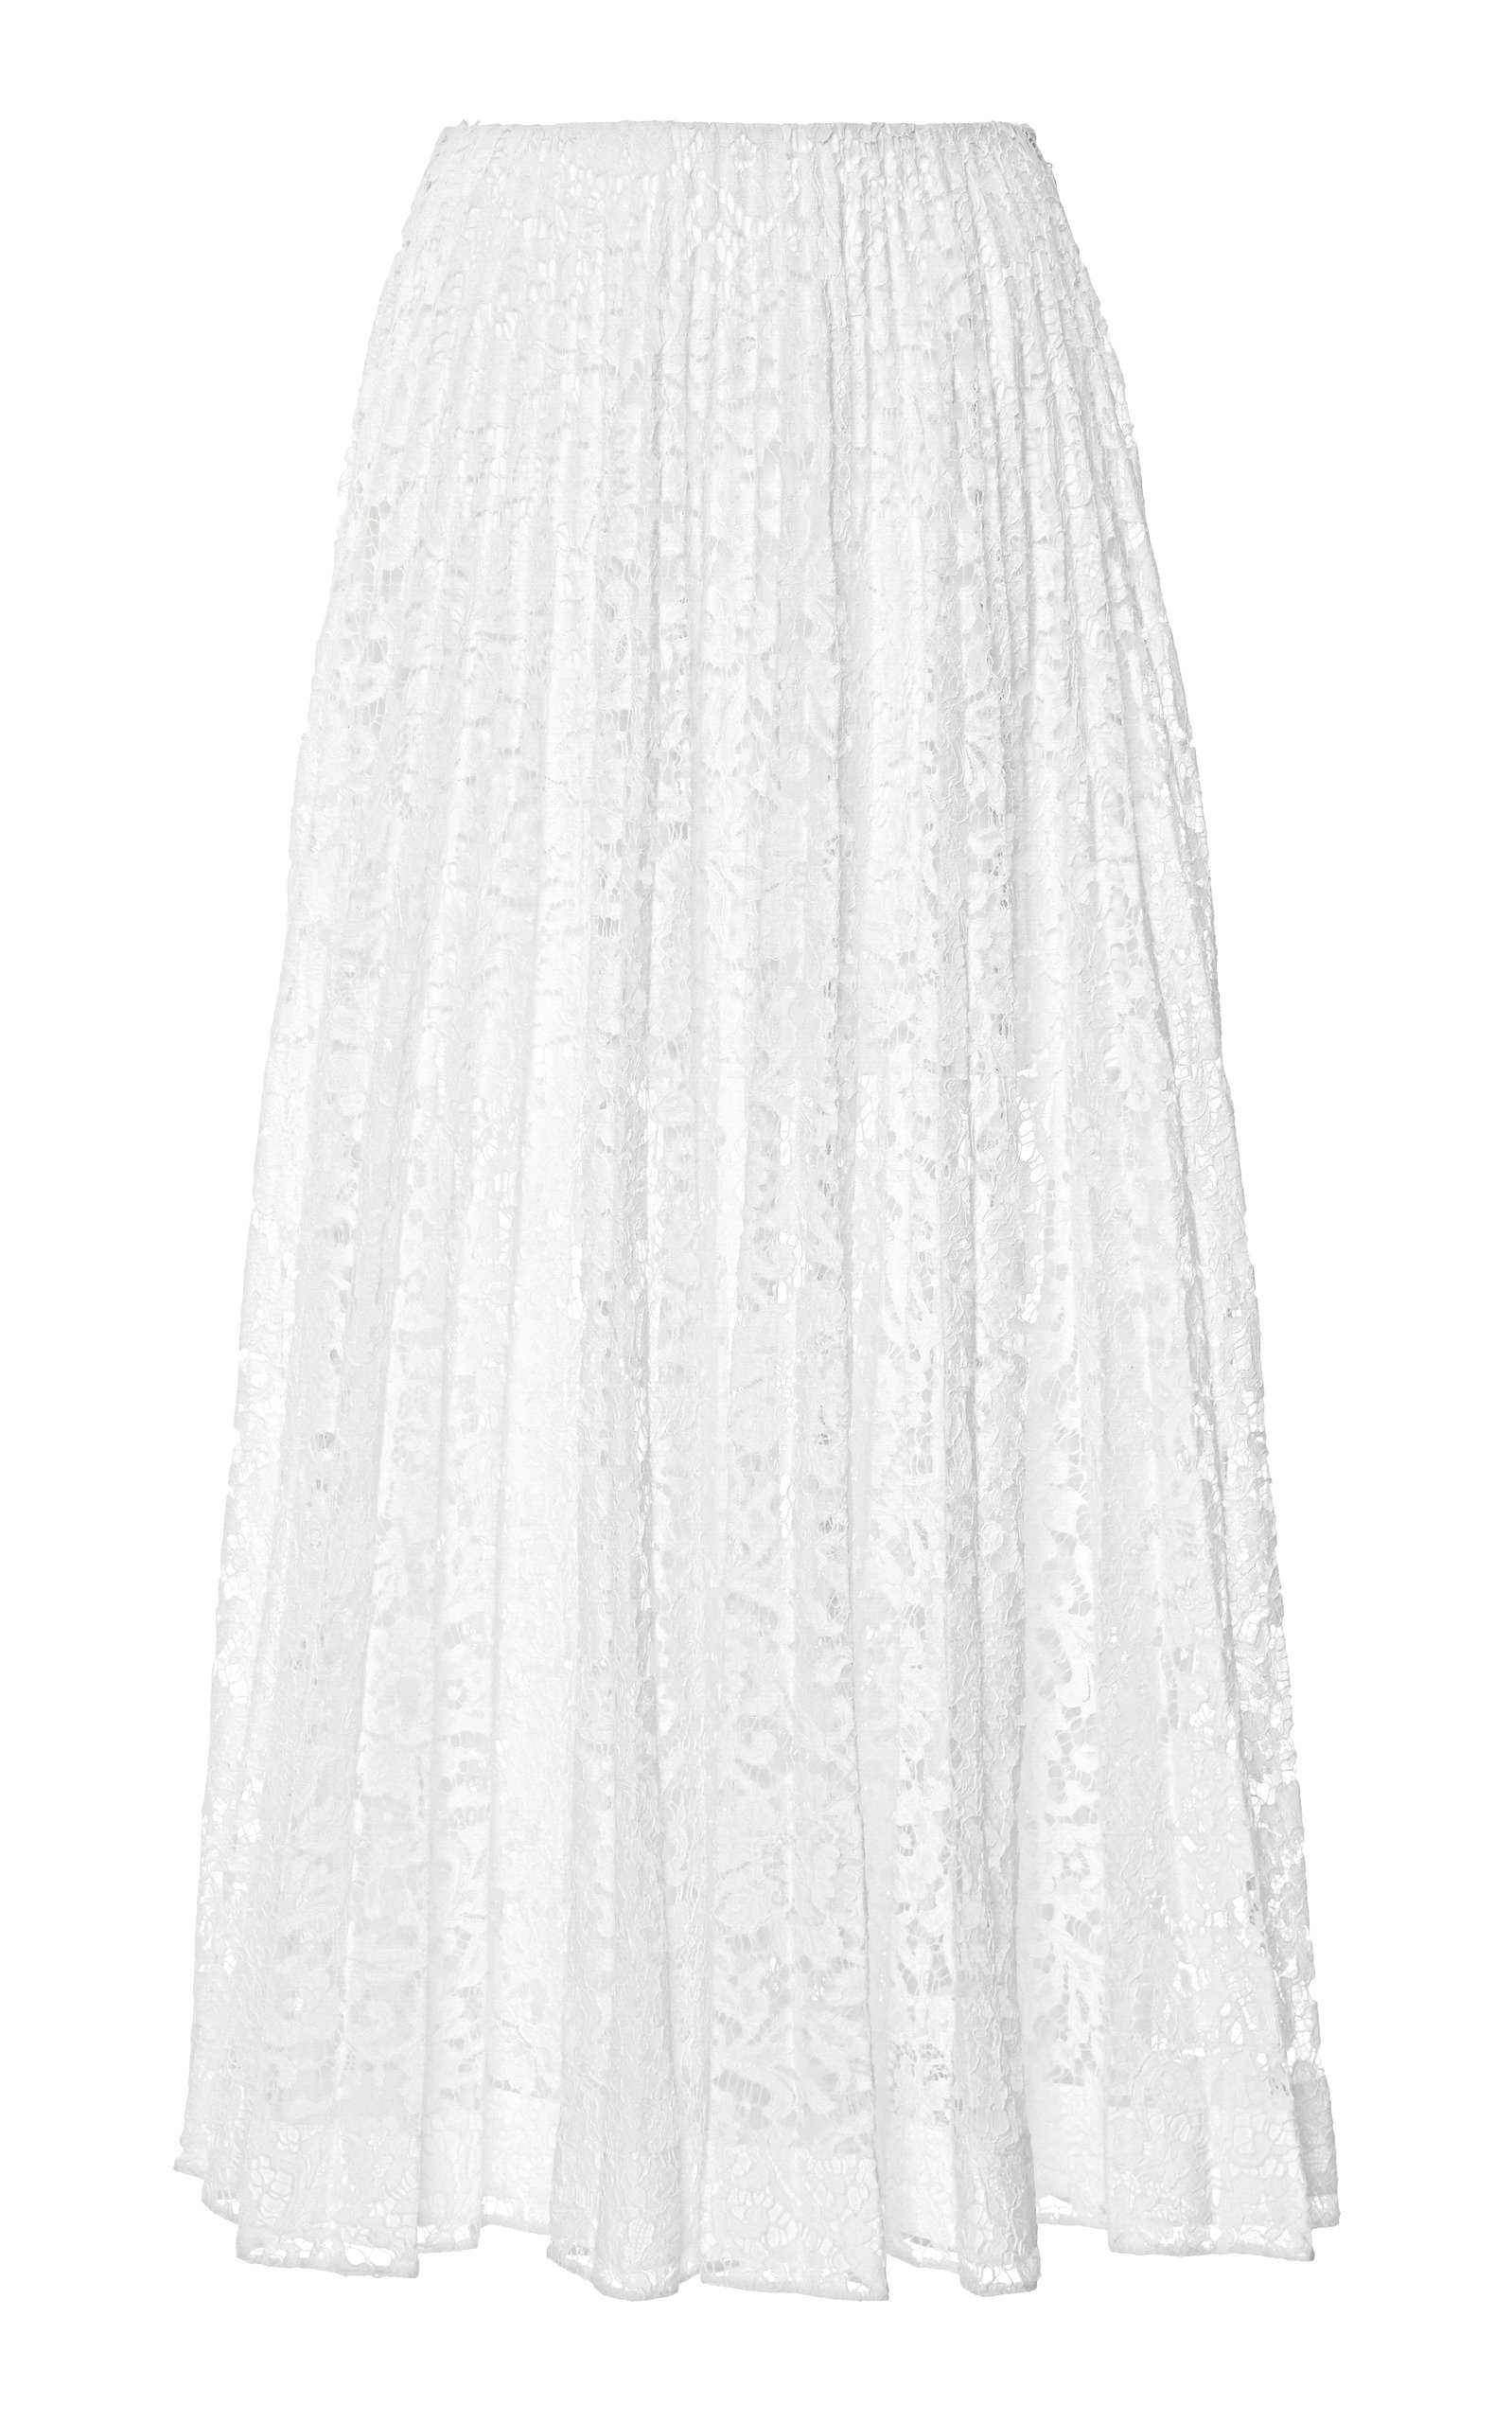 Valentino Sheer Pleated Lace Maxi Skirt Size: 42